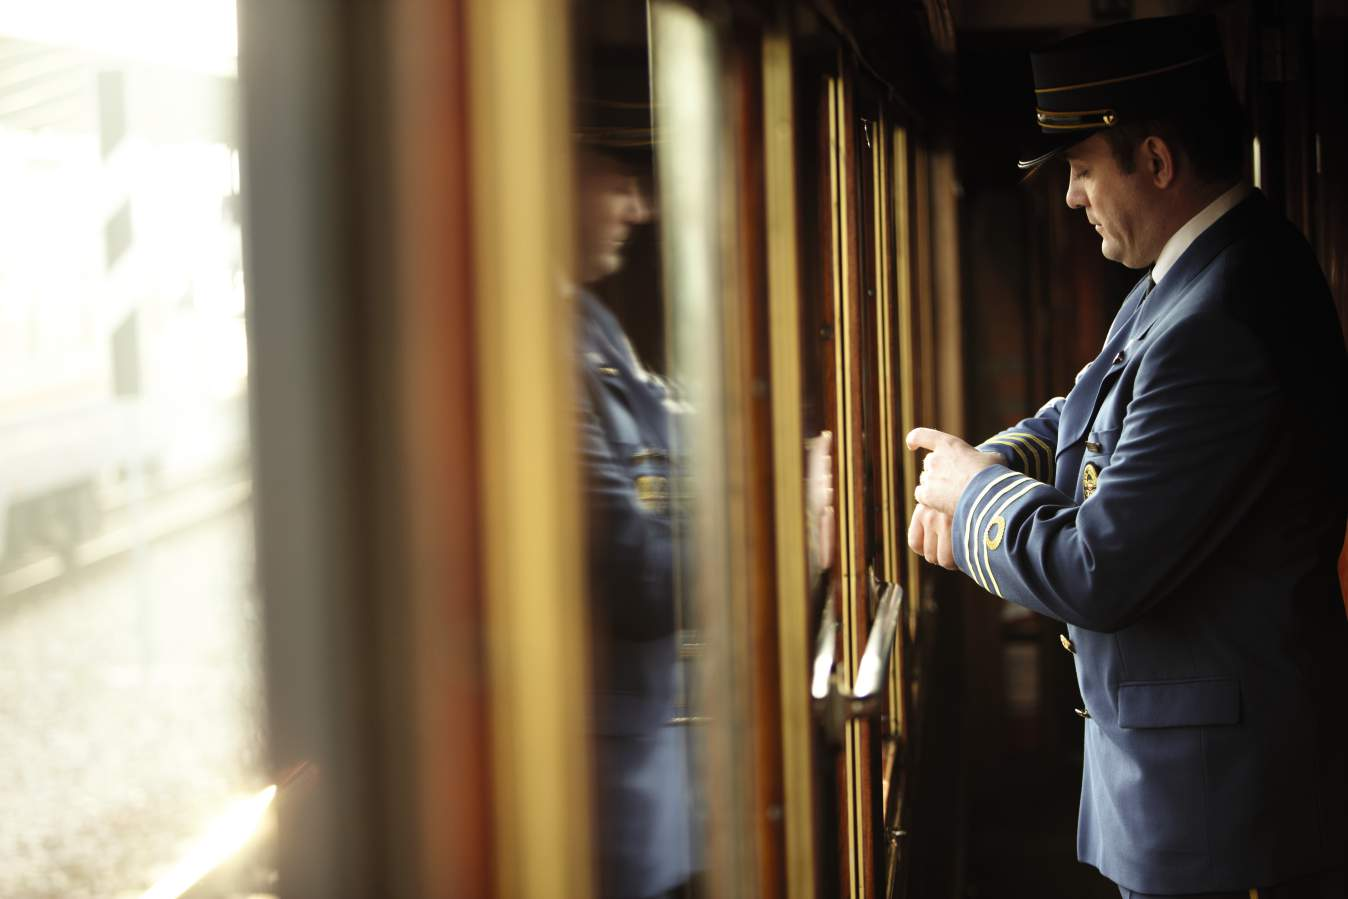 Venice Simplon Orient Express Luxusreisen Travel Blog Reisen 019